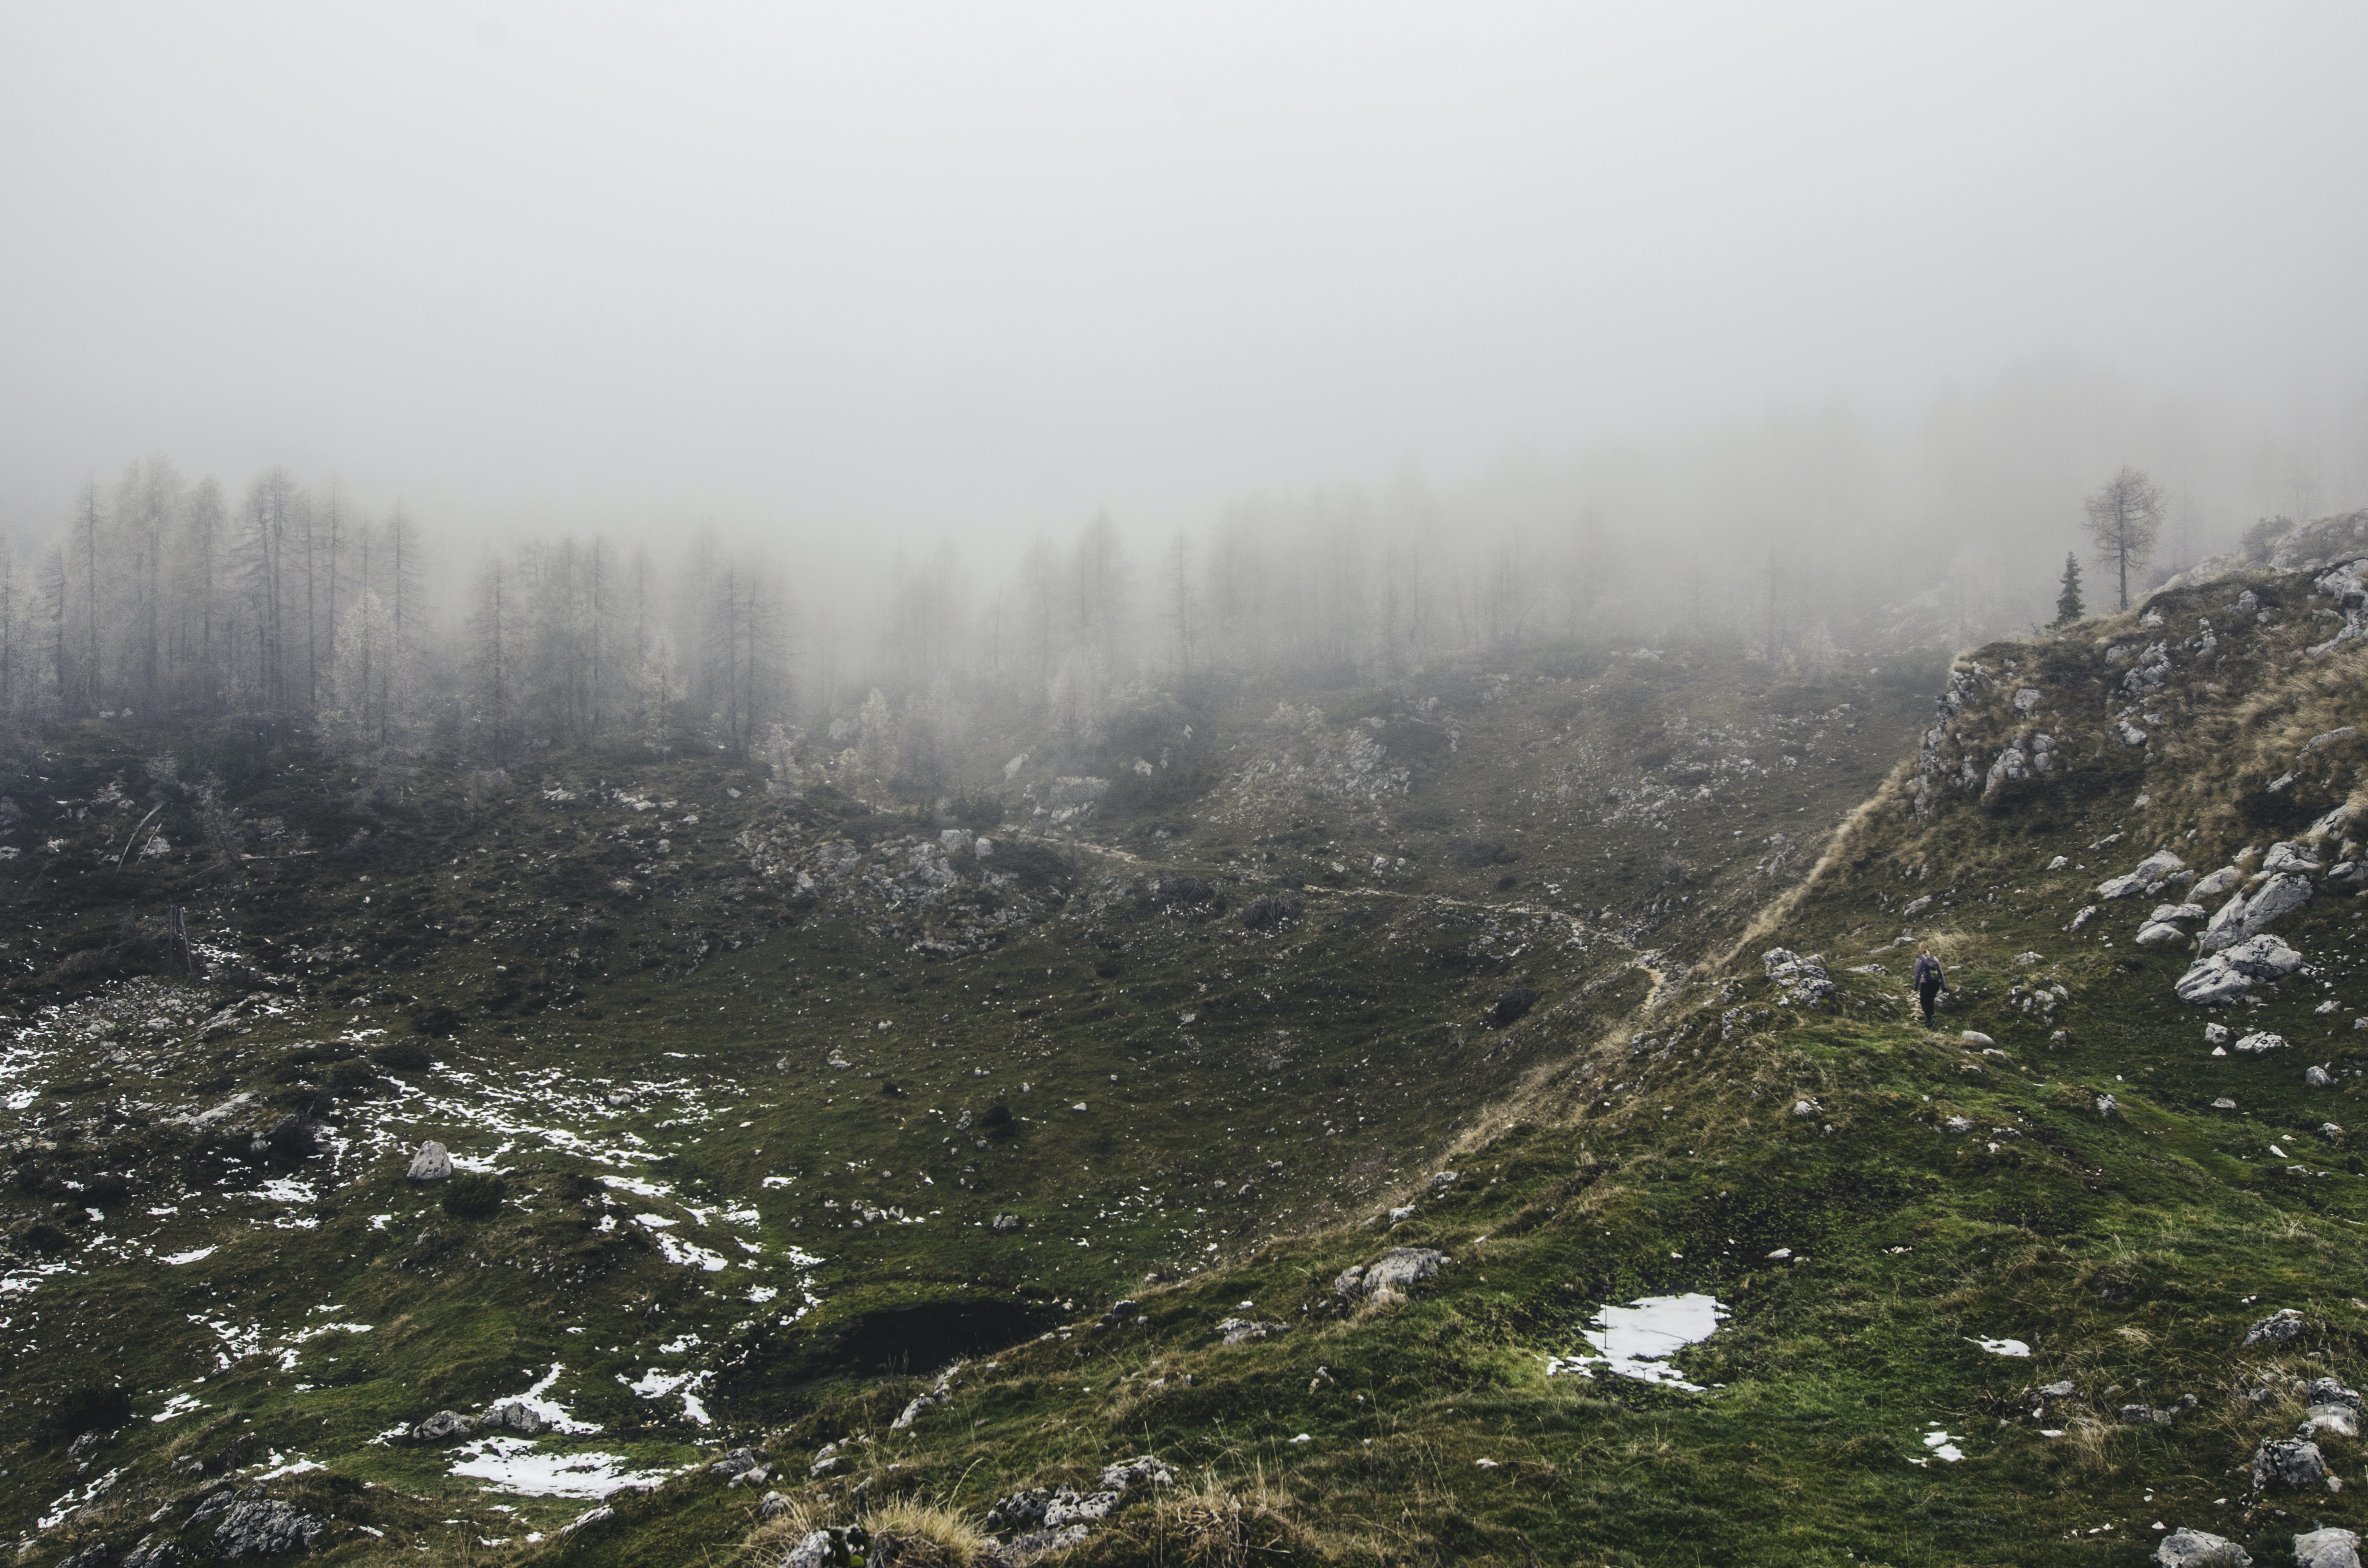 A lone hiker in a barren hilly landscape with snow-covered trees on the horizon